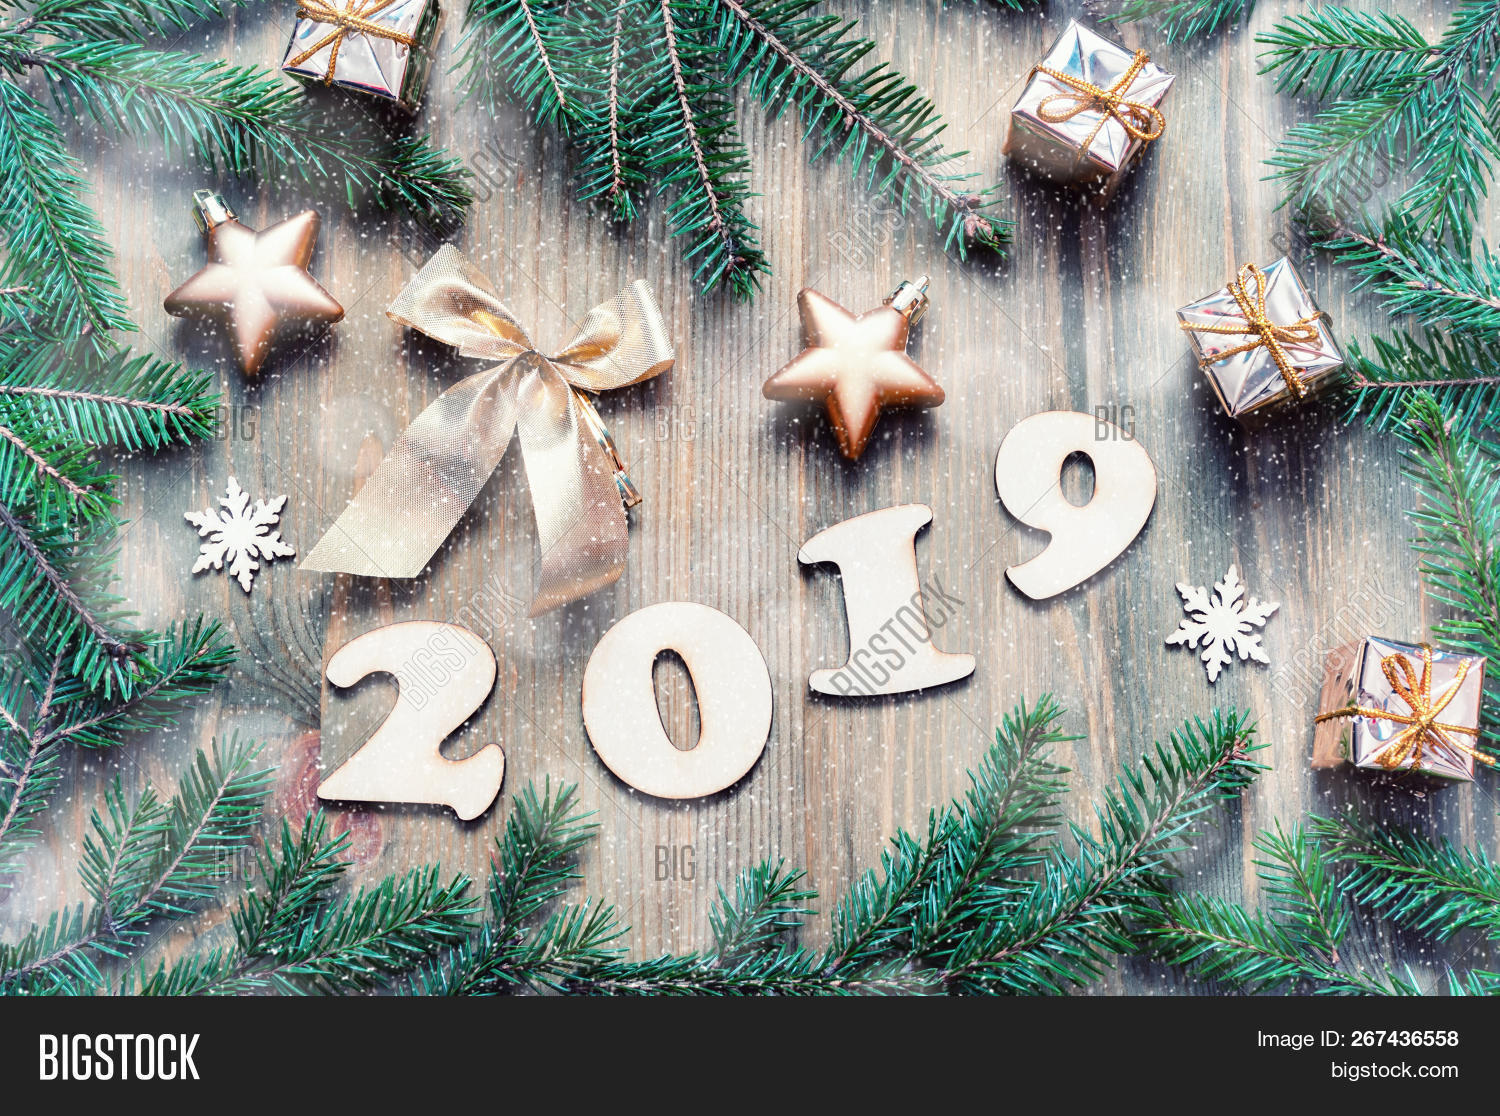 2019,background,bell,box,branch,calendar,card,celebration,christmas,december,decoration,eve,festive,figure,frame,gift,golden,green,greeting,happy,holiday,invitation,object,postcard,present,red,retro,ribbon,snowfall,snowflake,star,symbol,texture,time,tree,vacation,view,vintage,winter,wood,wooden,xmas,New-year,new-year-background,2019-card,2019-year,2019-background,2019-composition